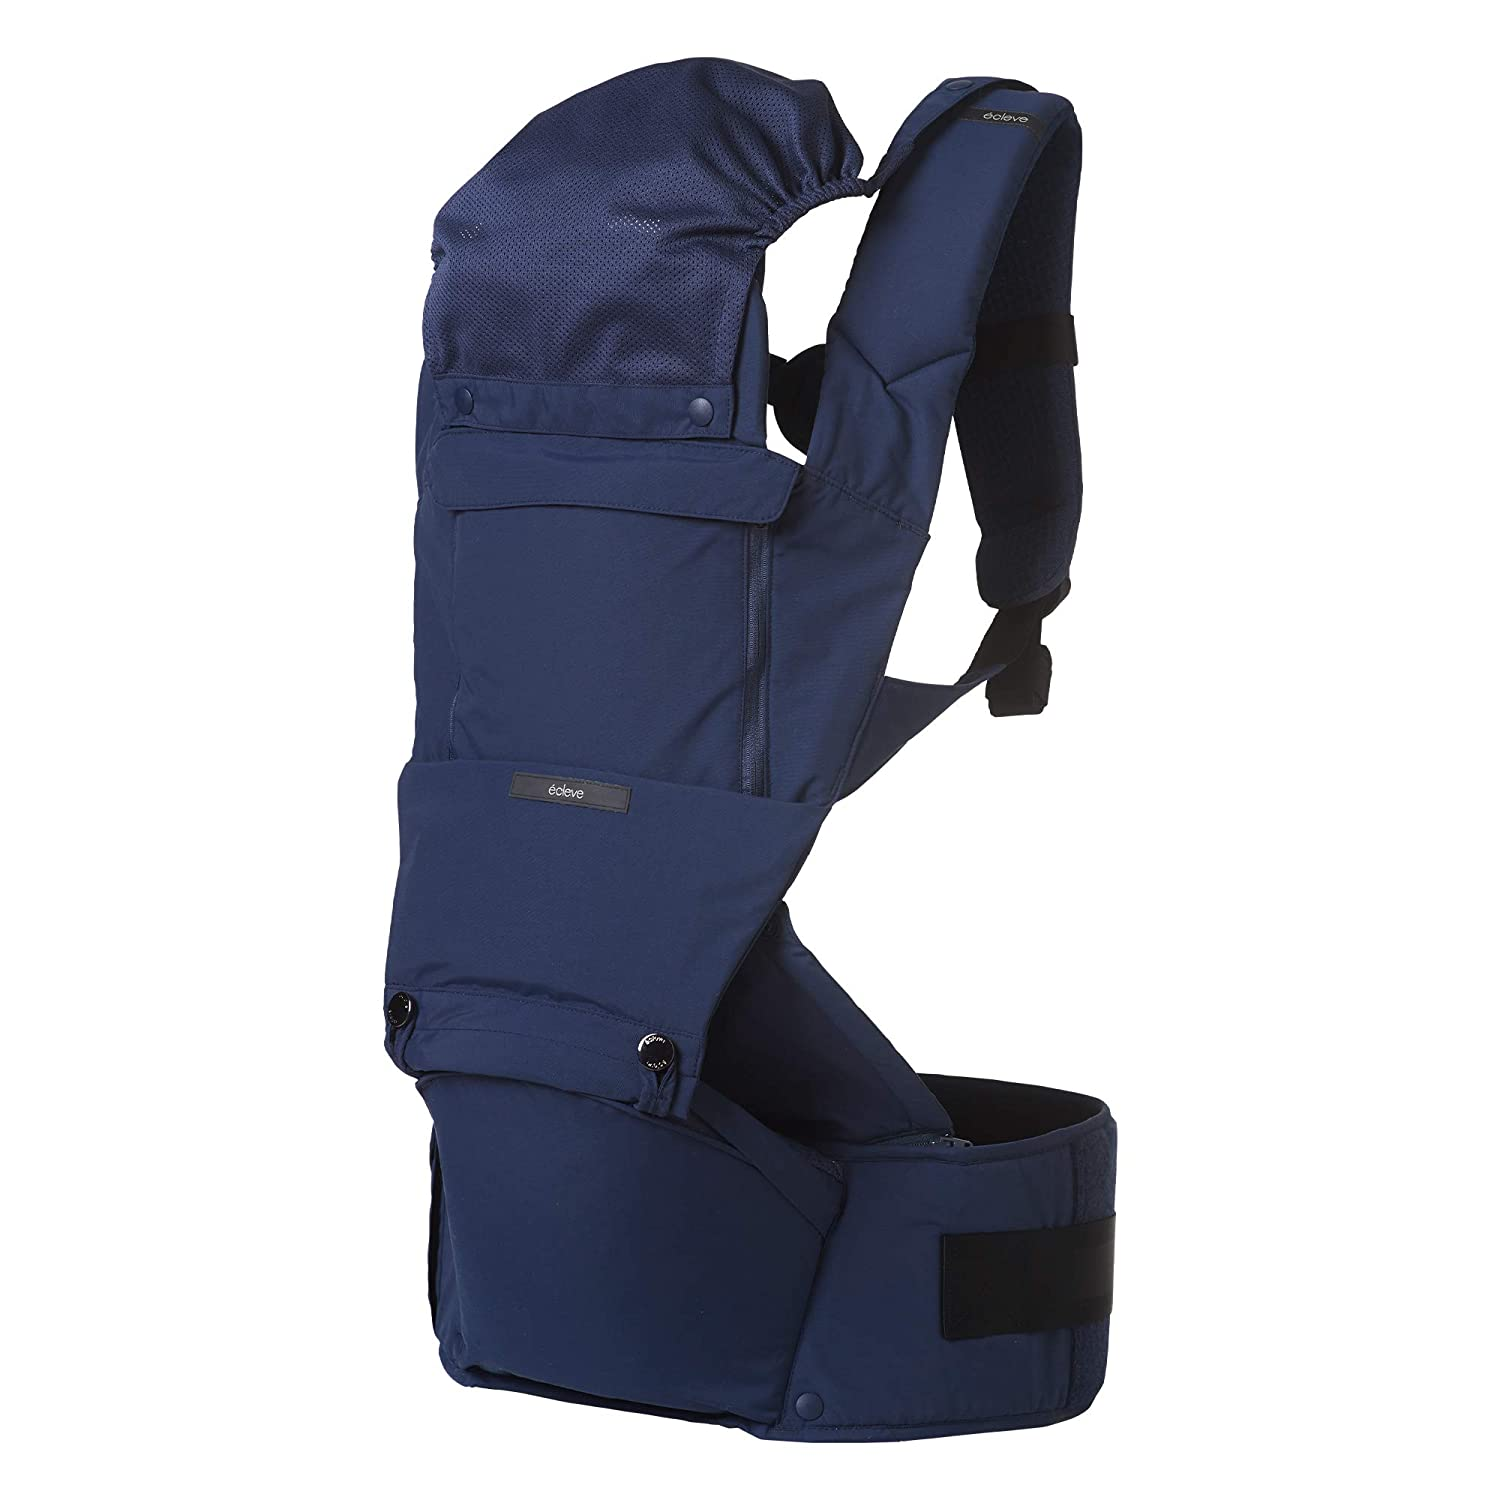 ÉCLEVE Pulse Ultimate Comfort Hip Seat Baby Carrier – Award-Winning 9 Position Front & Back Carry – US Safety Certified Up to 45 lbs (Midnight Blue) 71rvMOgk6HL._SL1500_